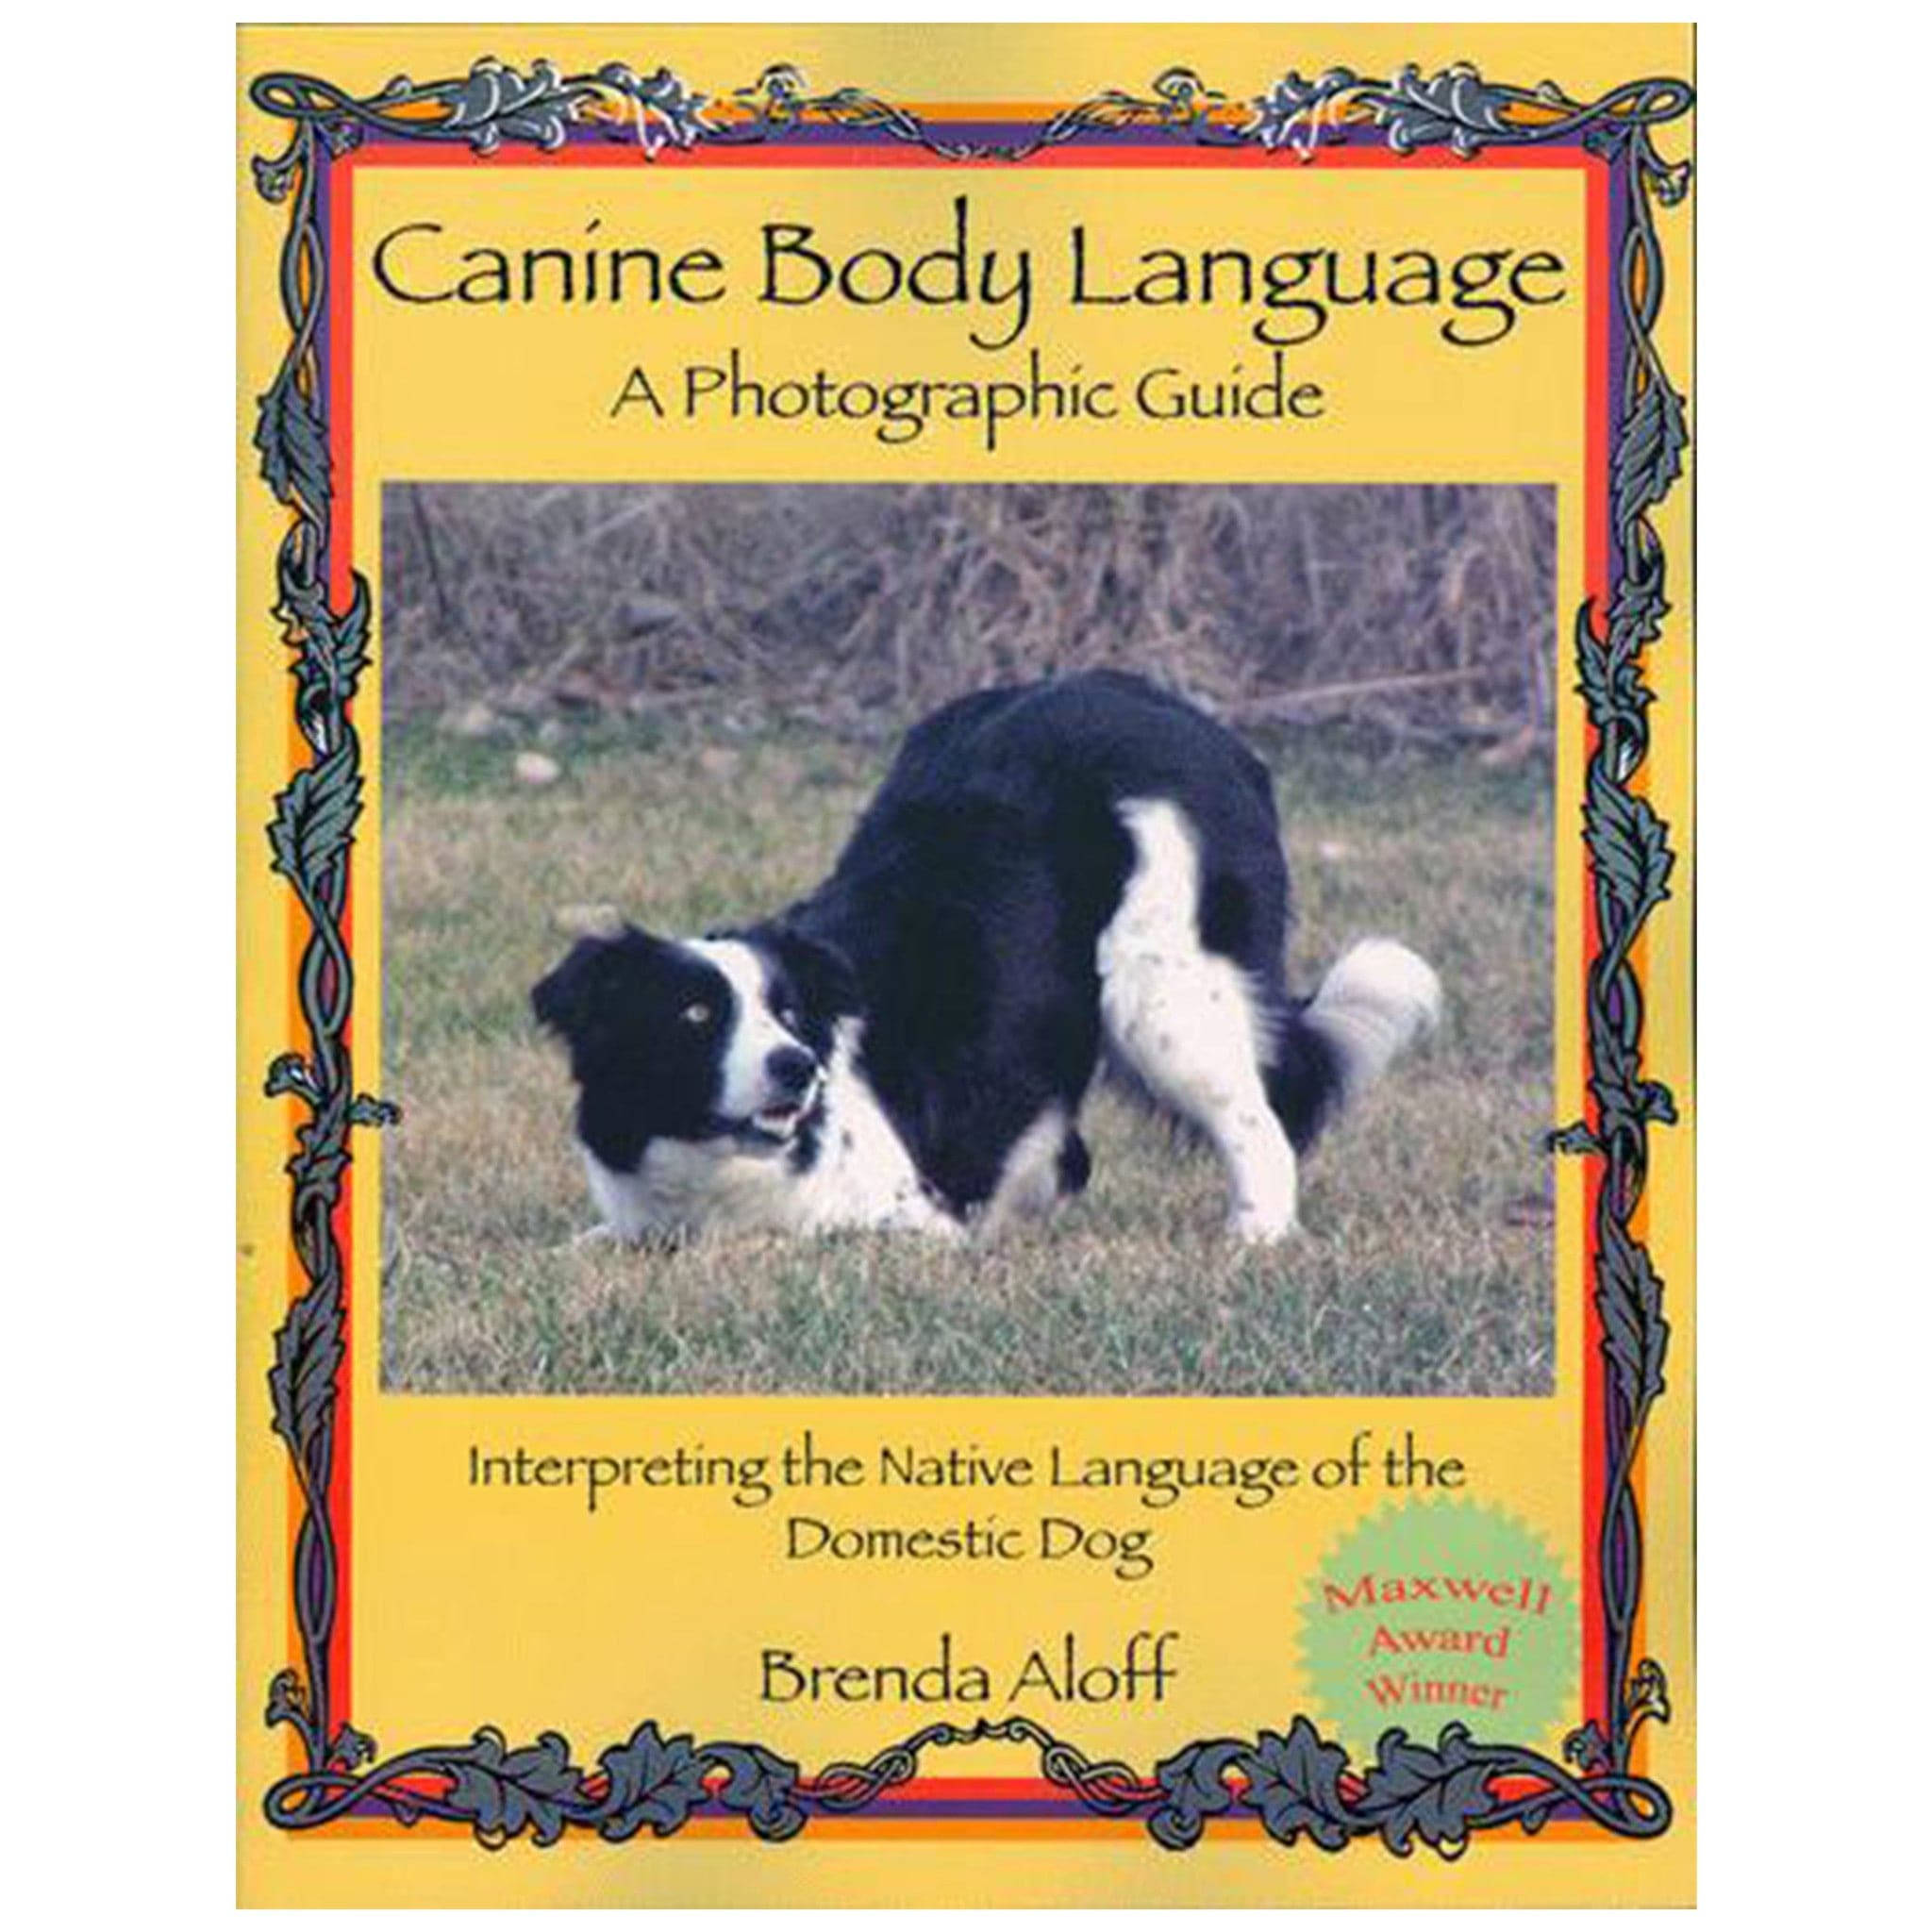 Canine Body Language: A Photographic Guide